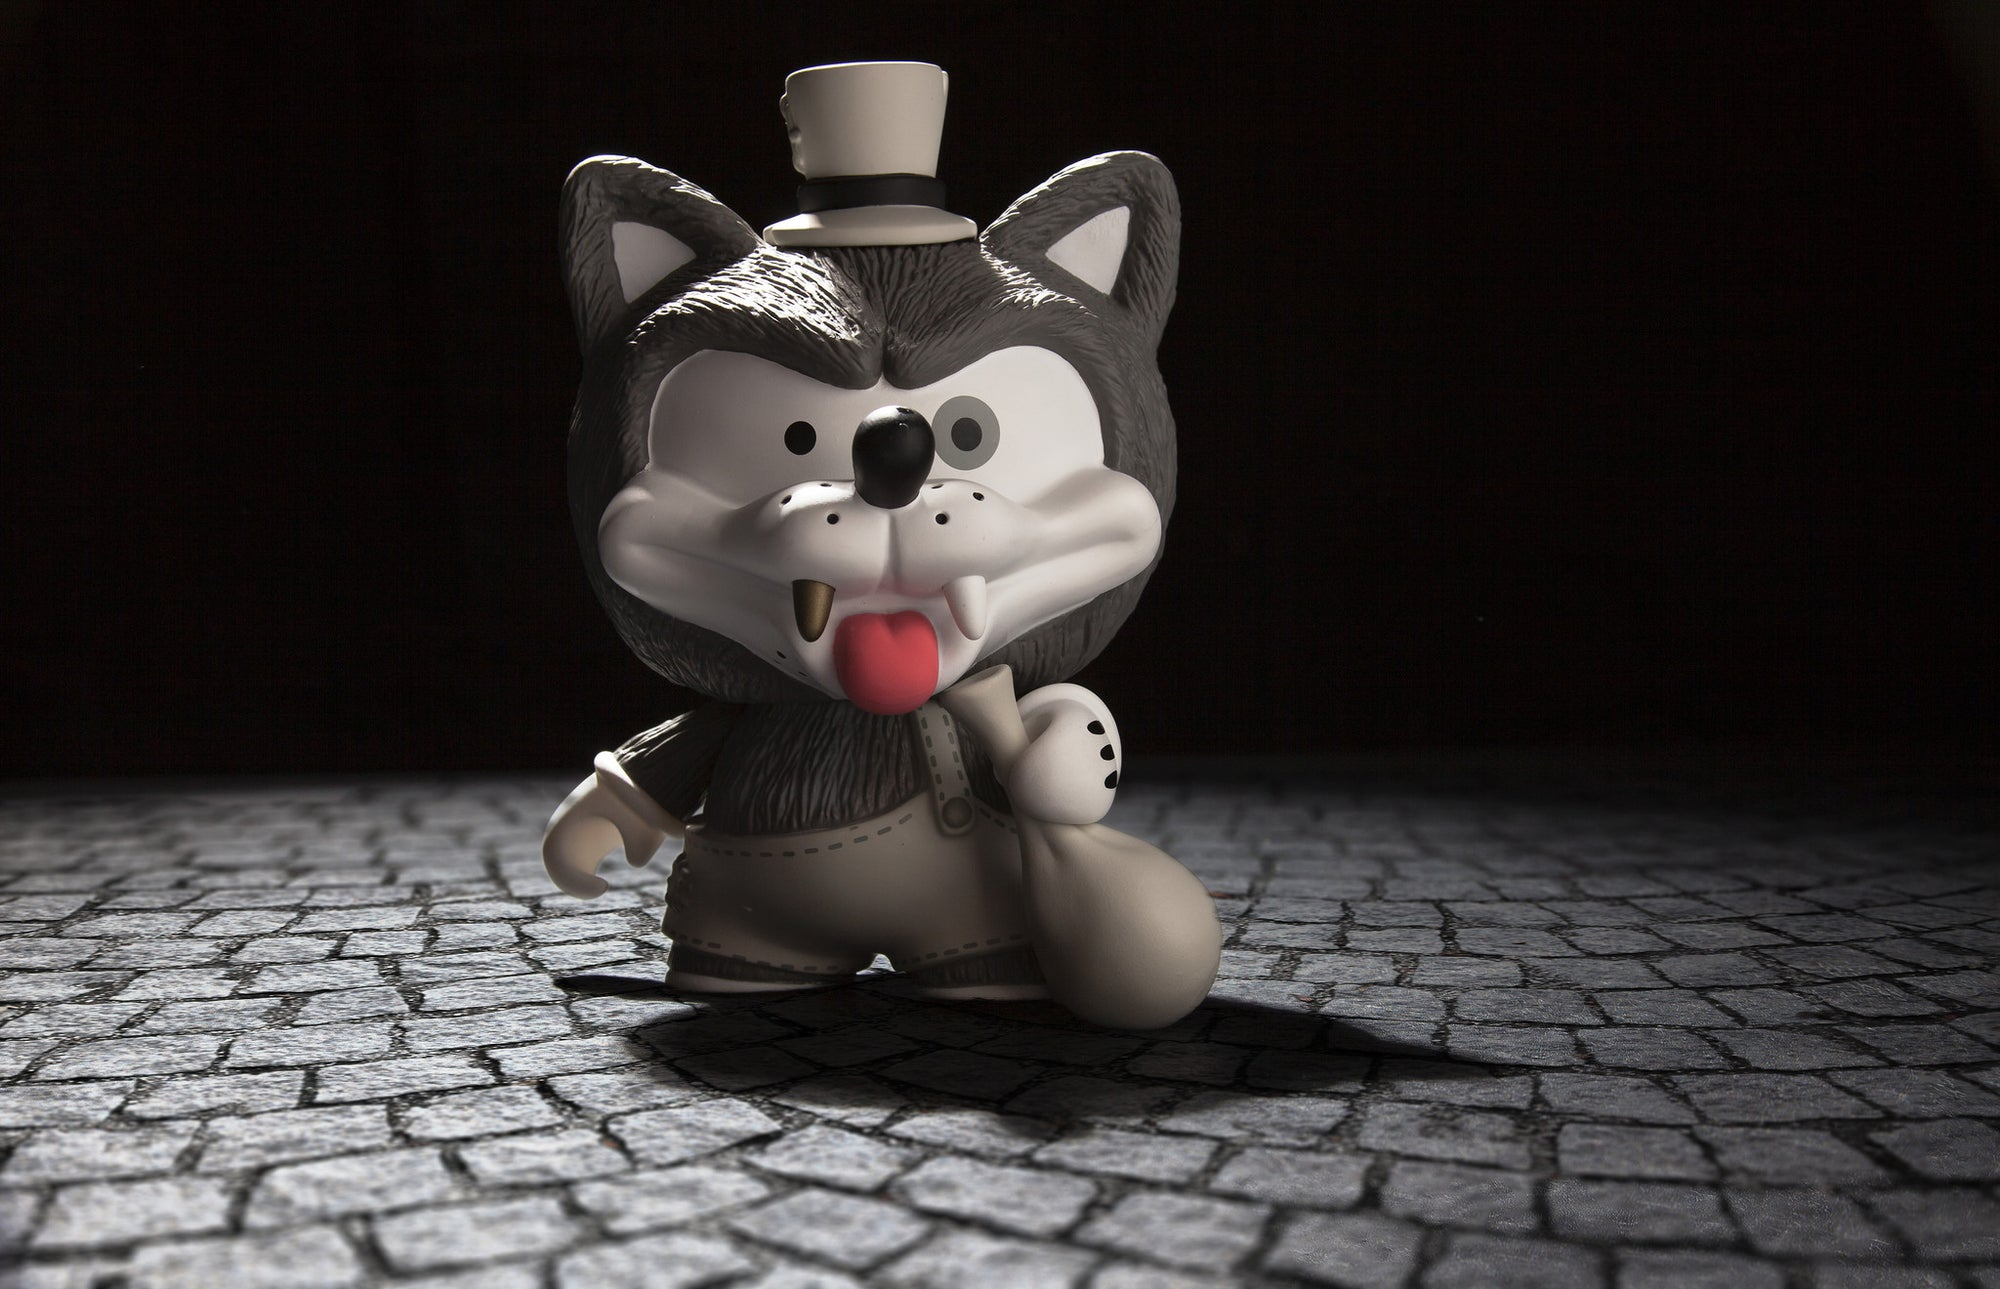 NEW Willy the Wolf Medium Figure by Shiffa Available today at Kidrobot.com